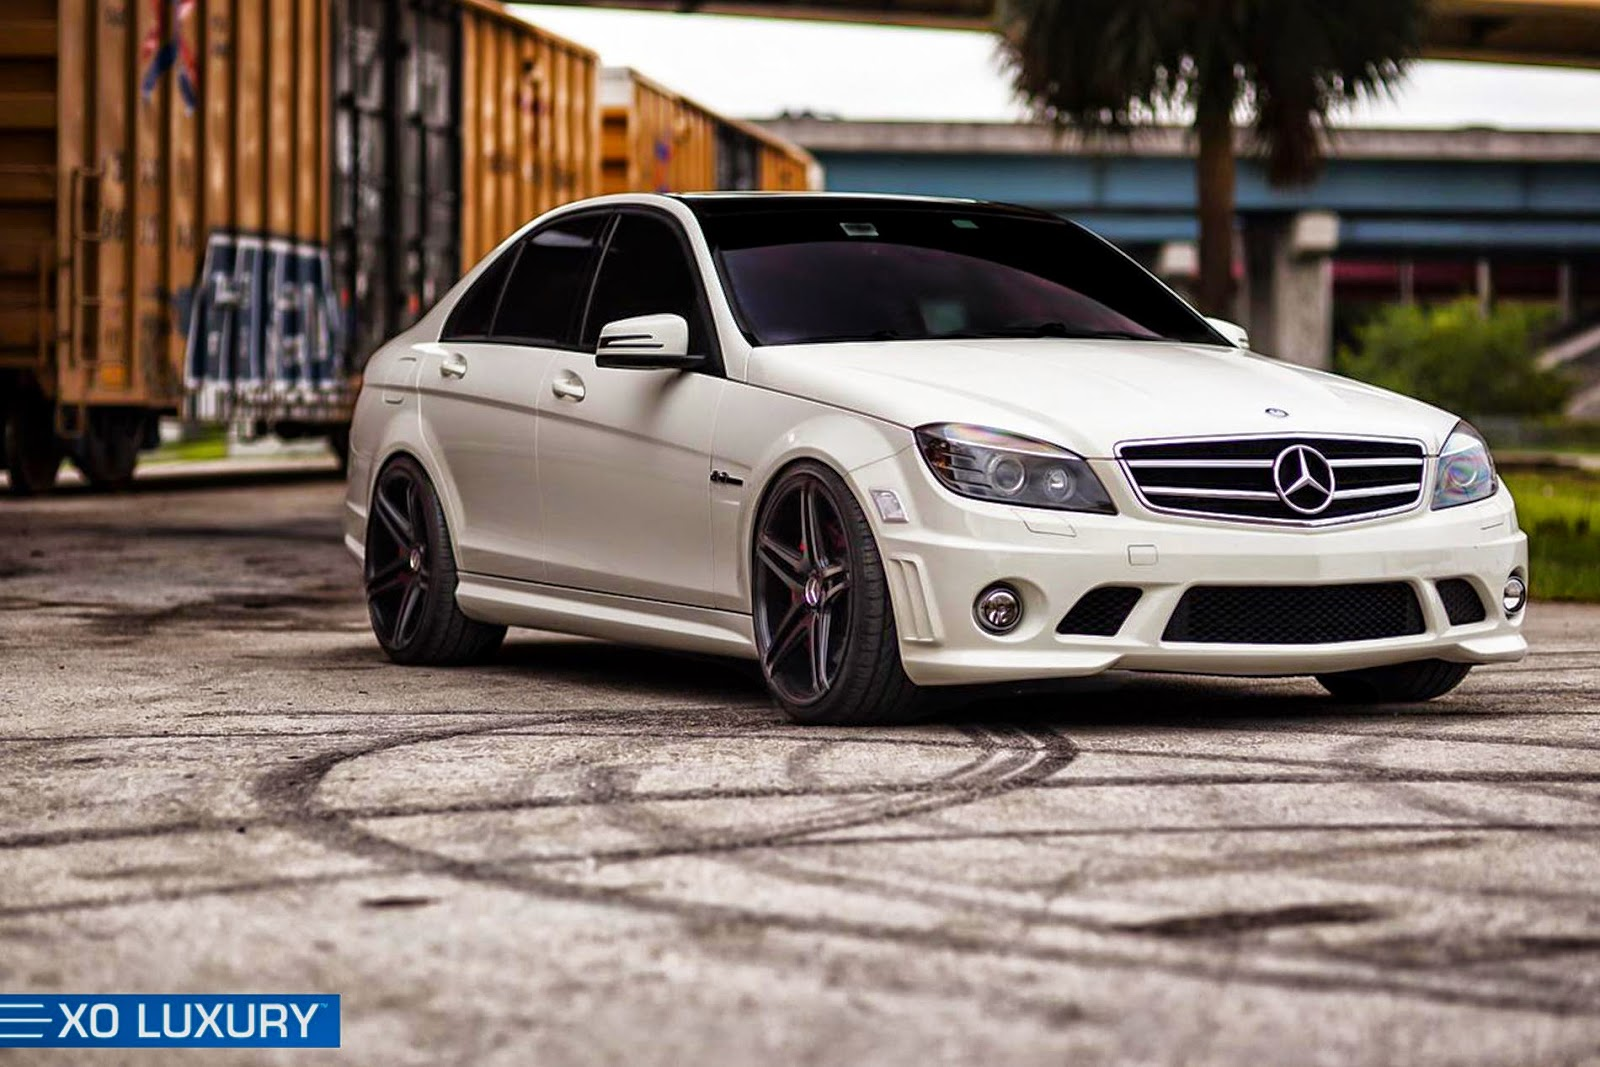 Mercedes Benz W204 C63 Amg On Xo Luxury Wheels Benztuning